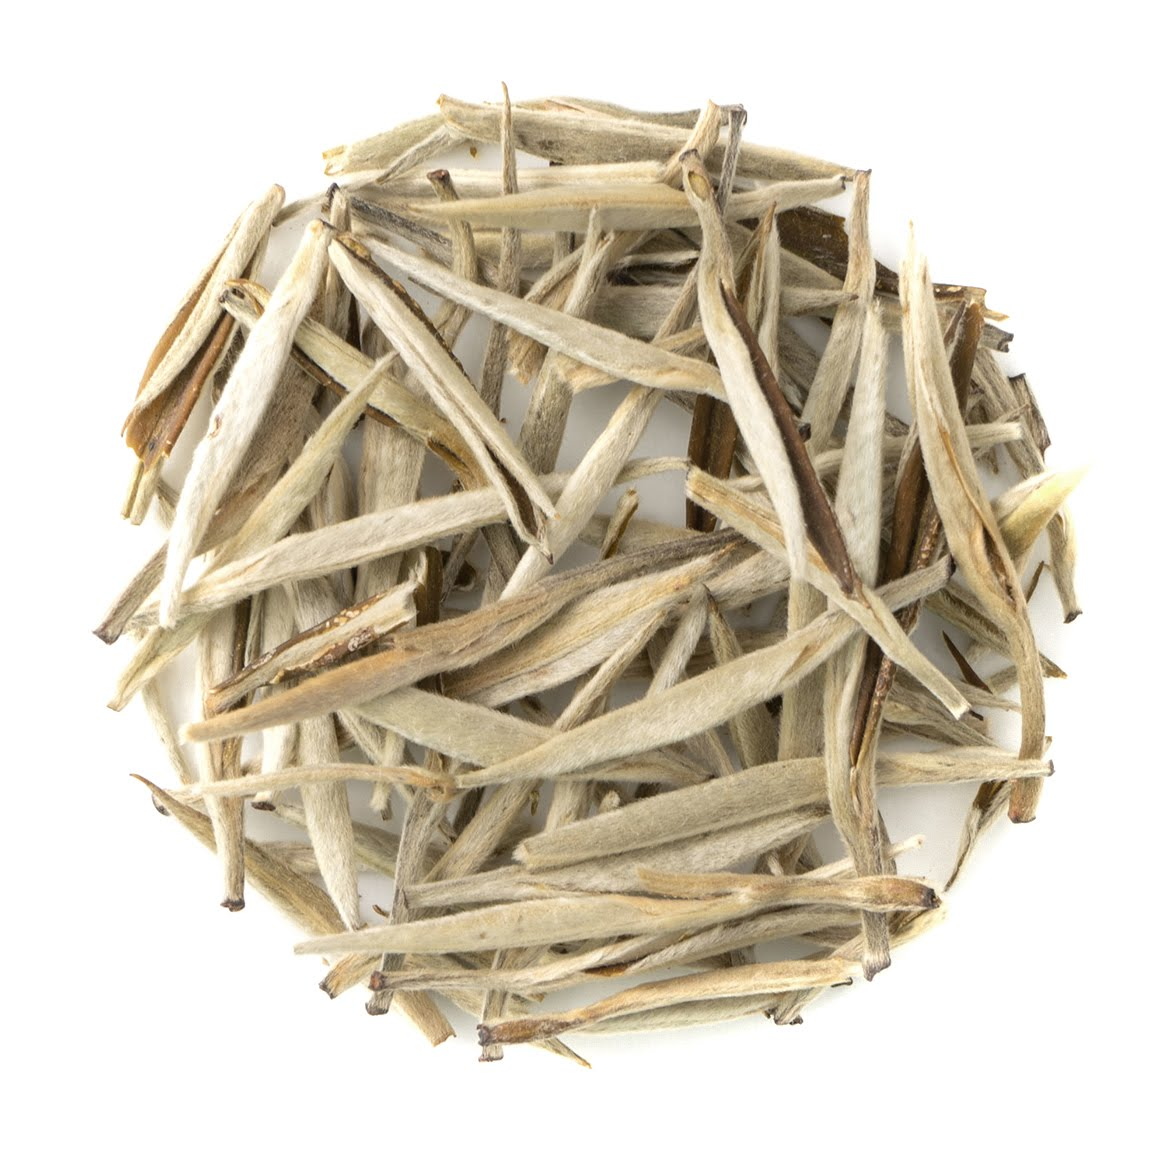 Artisanal Tea - Rare Tea - Single Origin Tea - Loose Leaf Rare Teas - Heavenly Tea Leaves